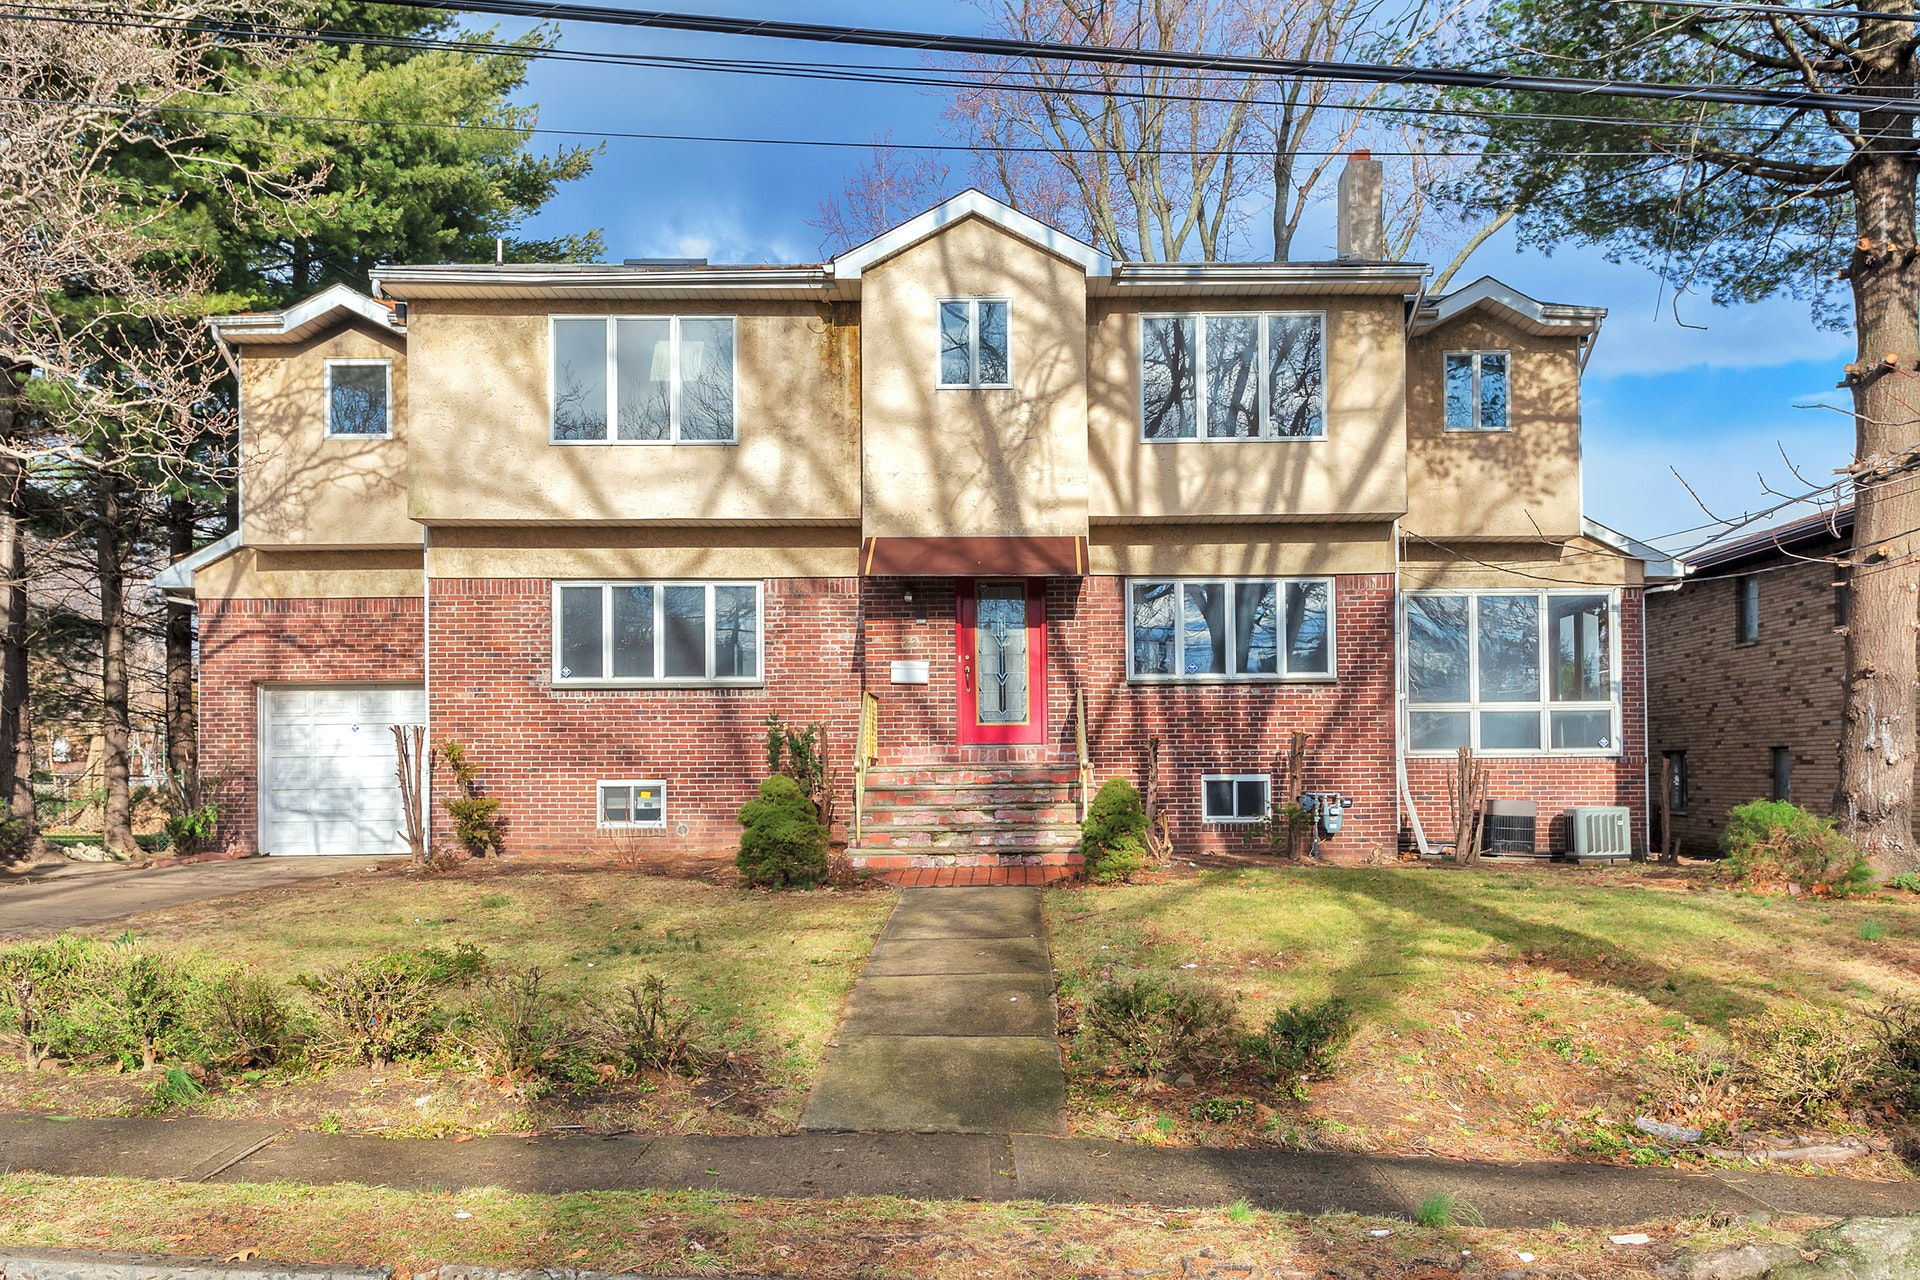 SOLD- 23 Plateau Ave. Fort Lee, NJ 07024 $719,900